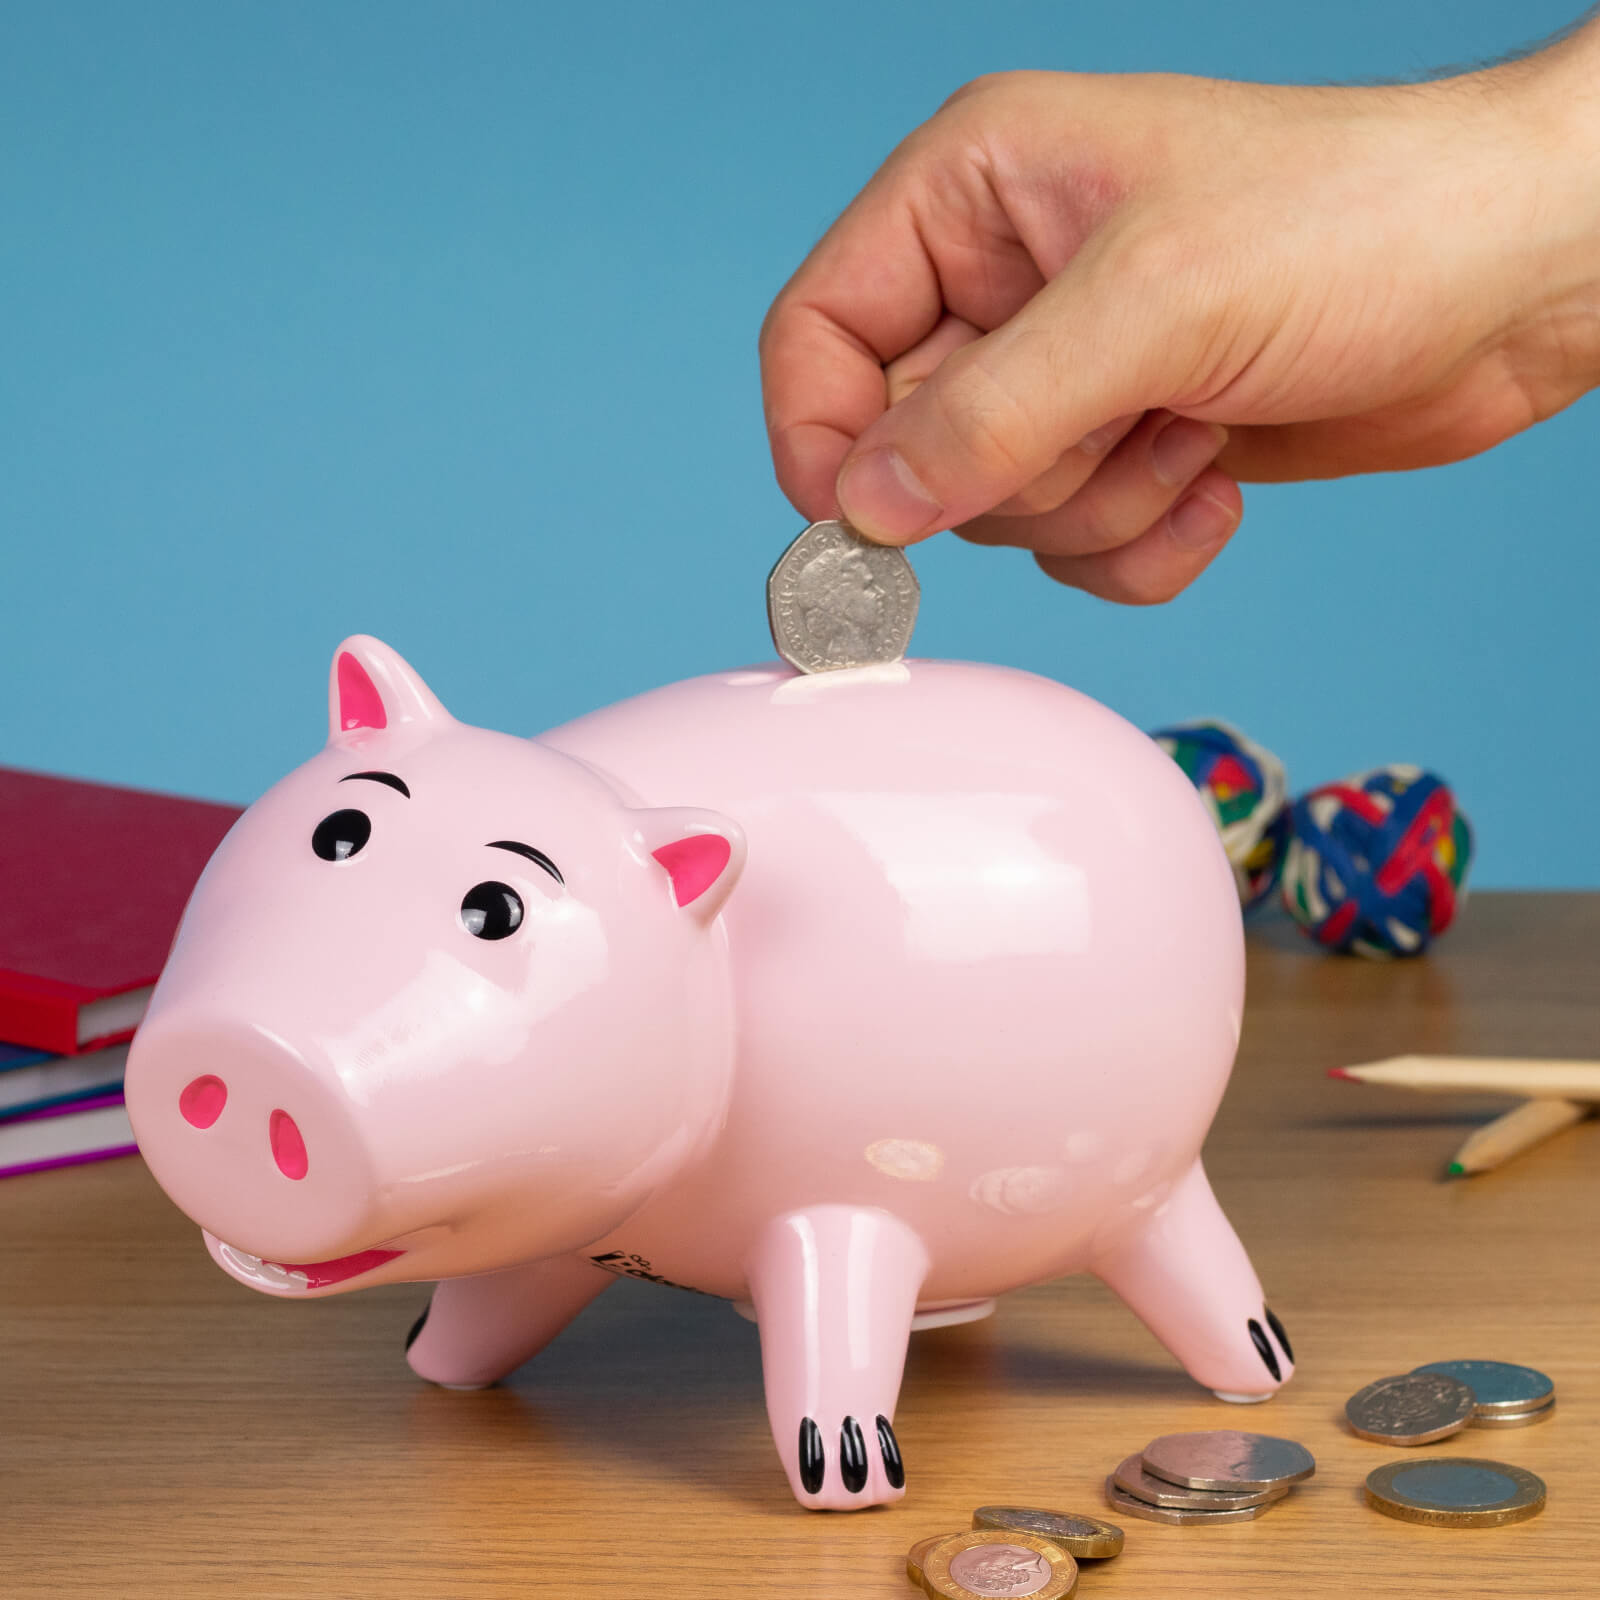 How to save money by building a budget